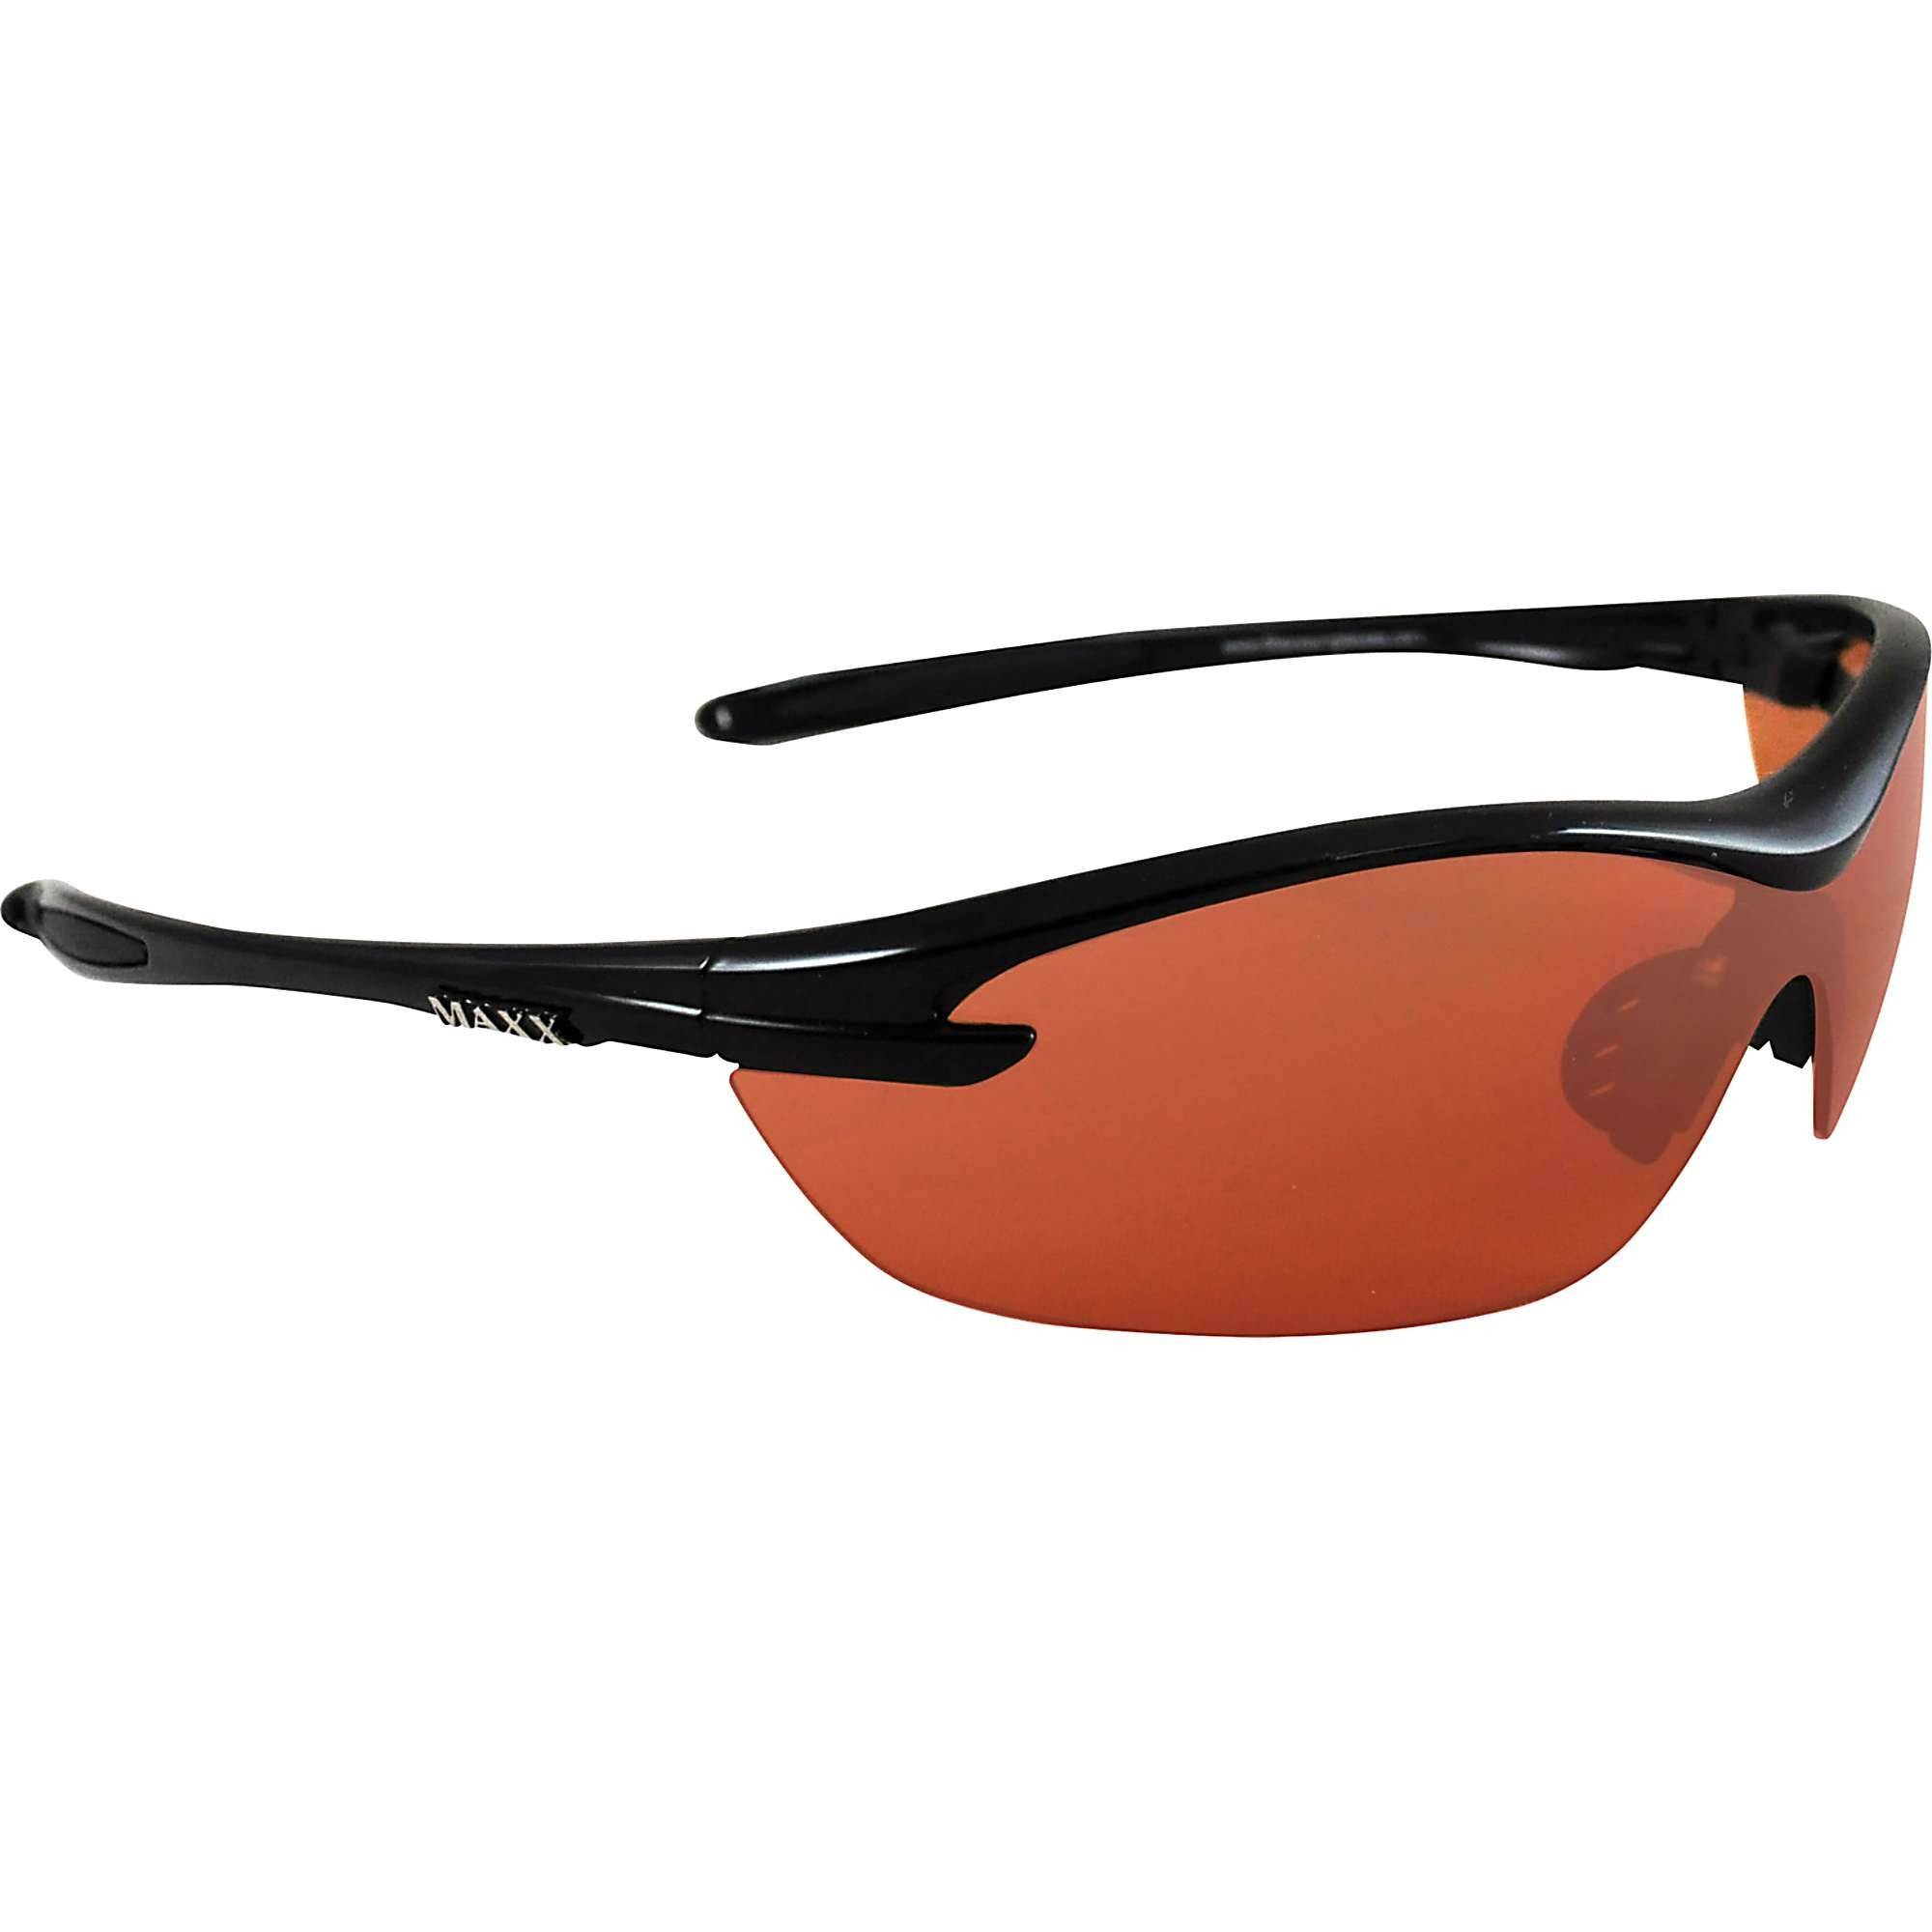 Maxx Hd Gt Sunglasses